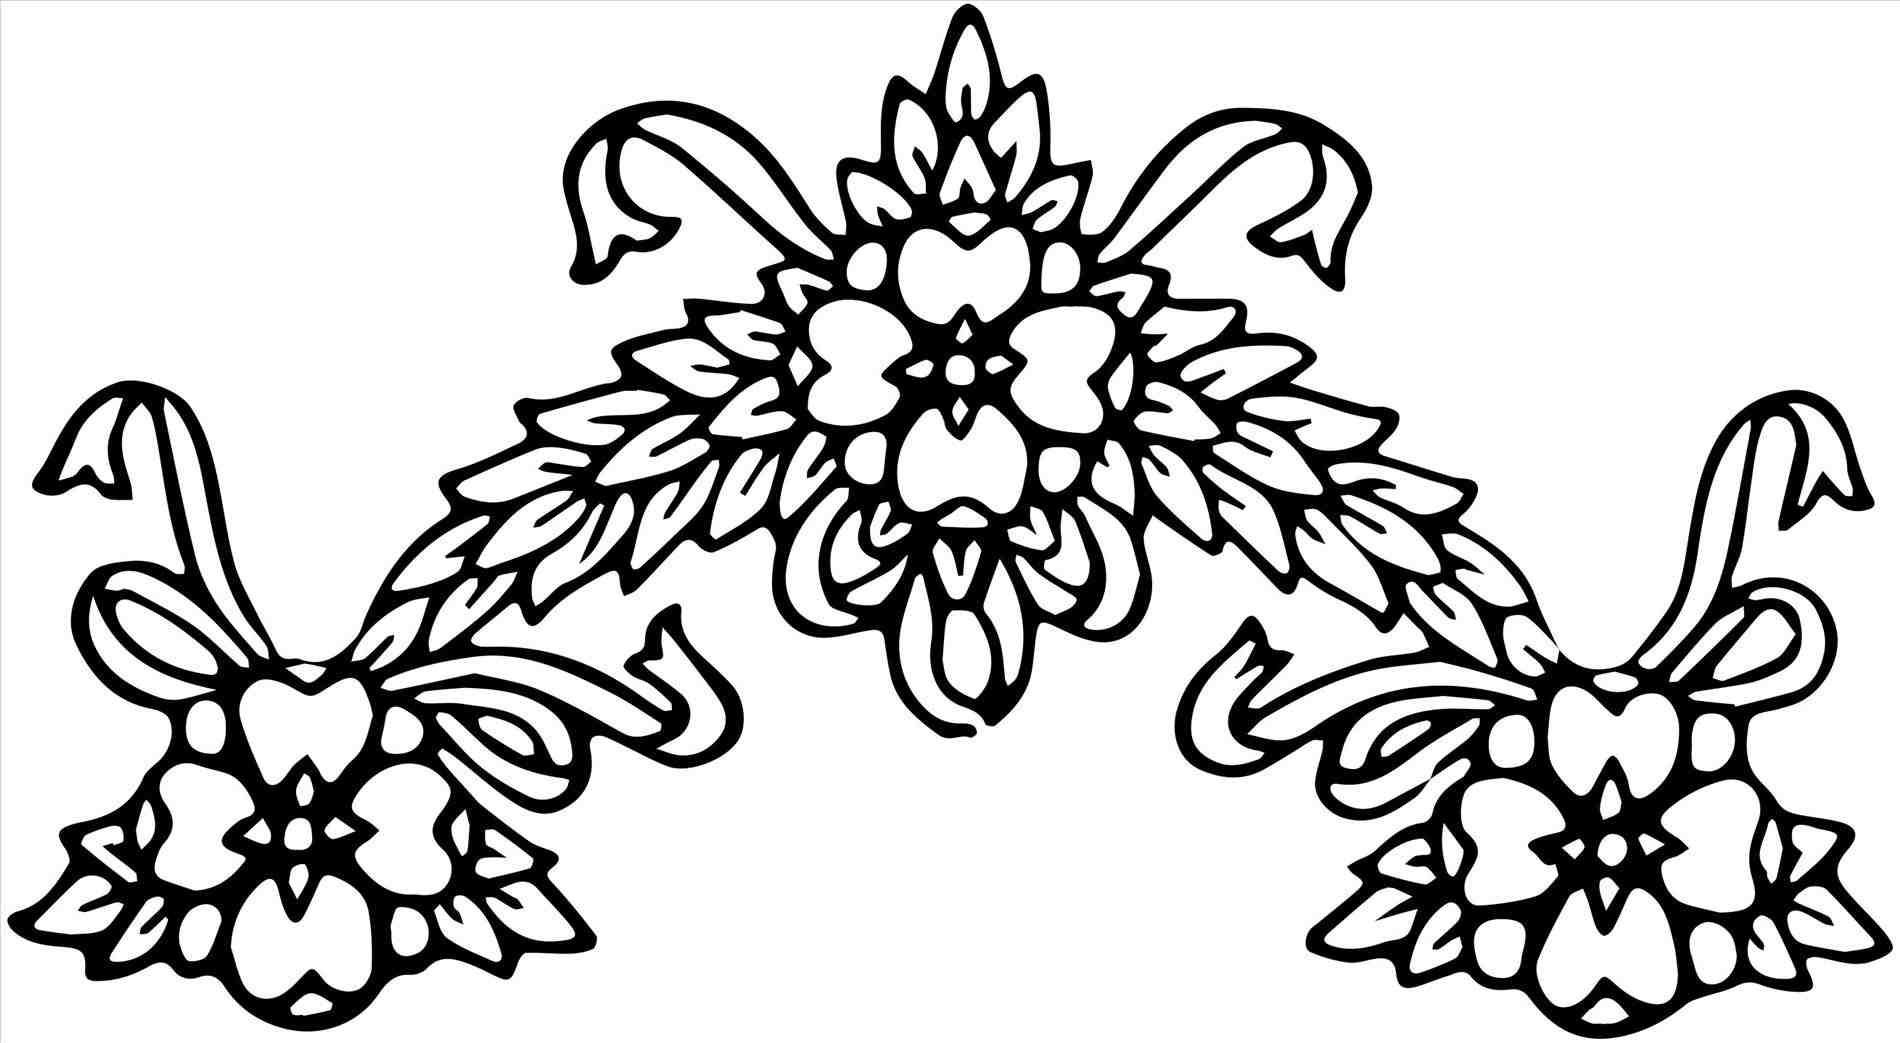 1900x1043 Clipart Transparent Png Clip Art Image Garland S Free Download